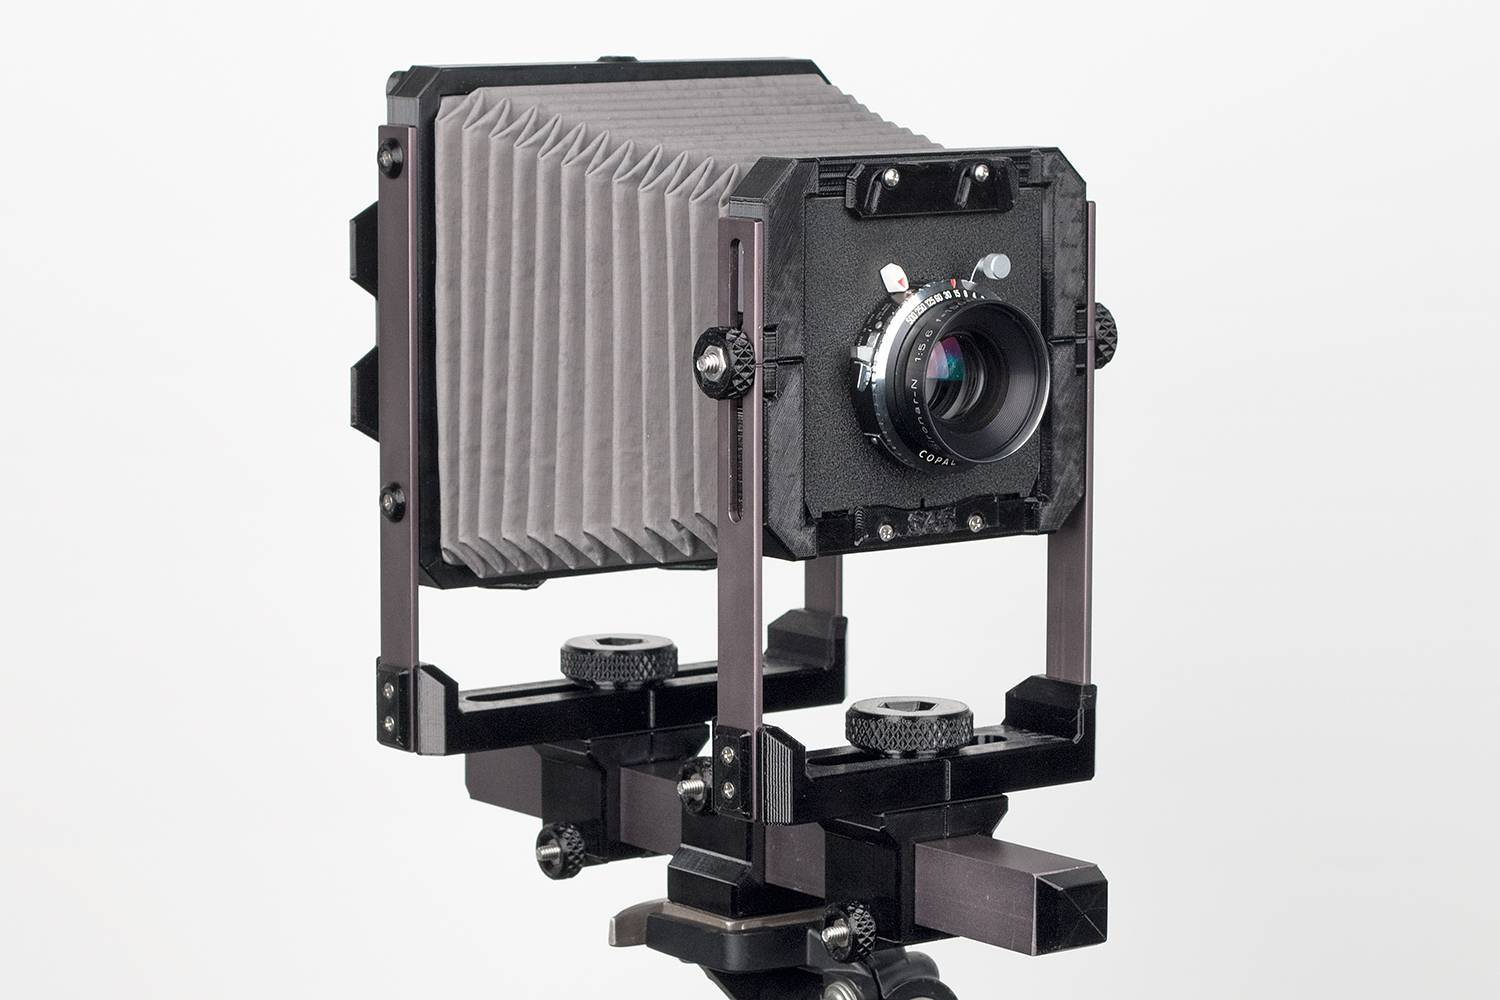 Store Your 35mm Compact Cameras And TLRs For A While Give Yourself Challenge With The Standard 4x5 DIY Large Format Camera Meant Budding